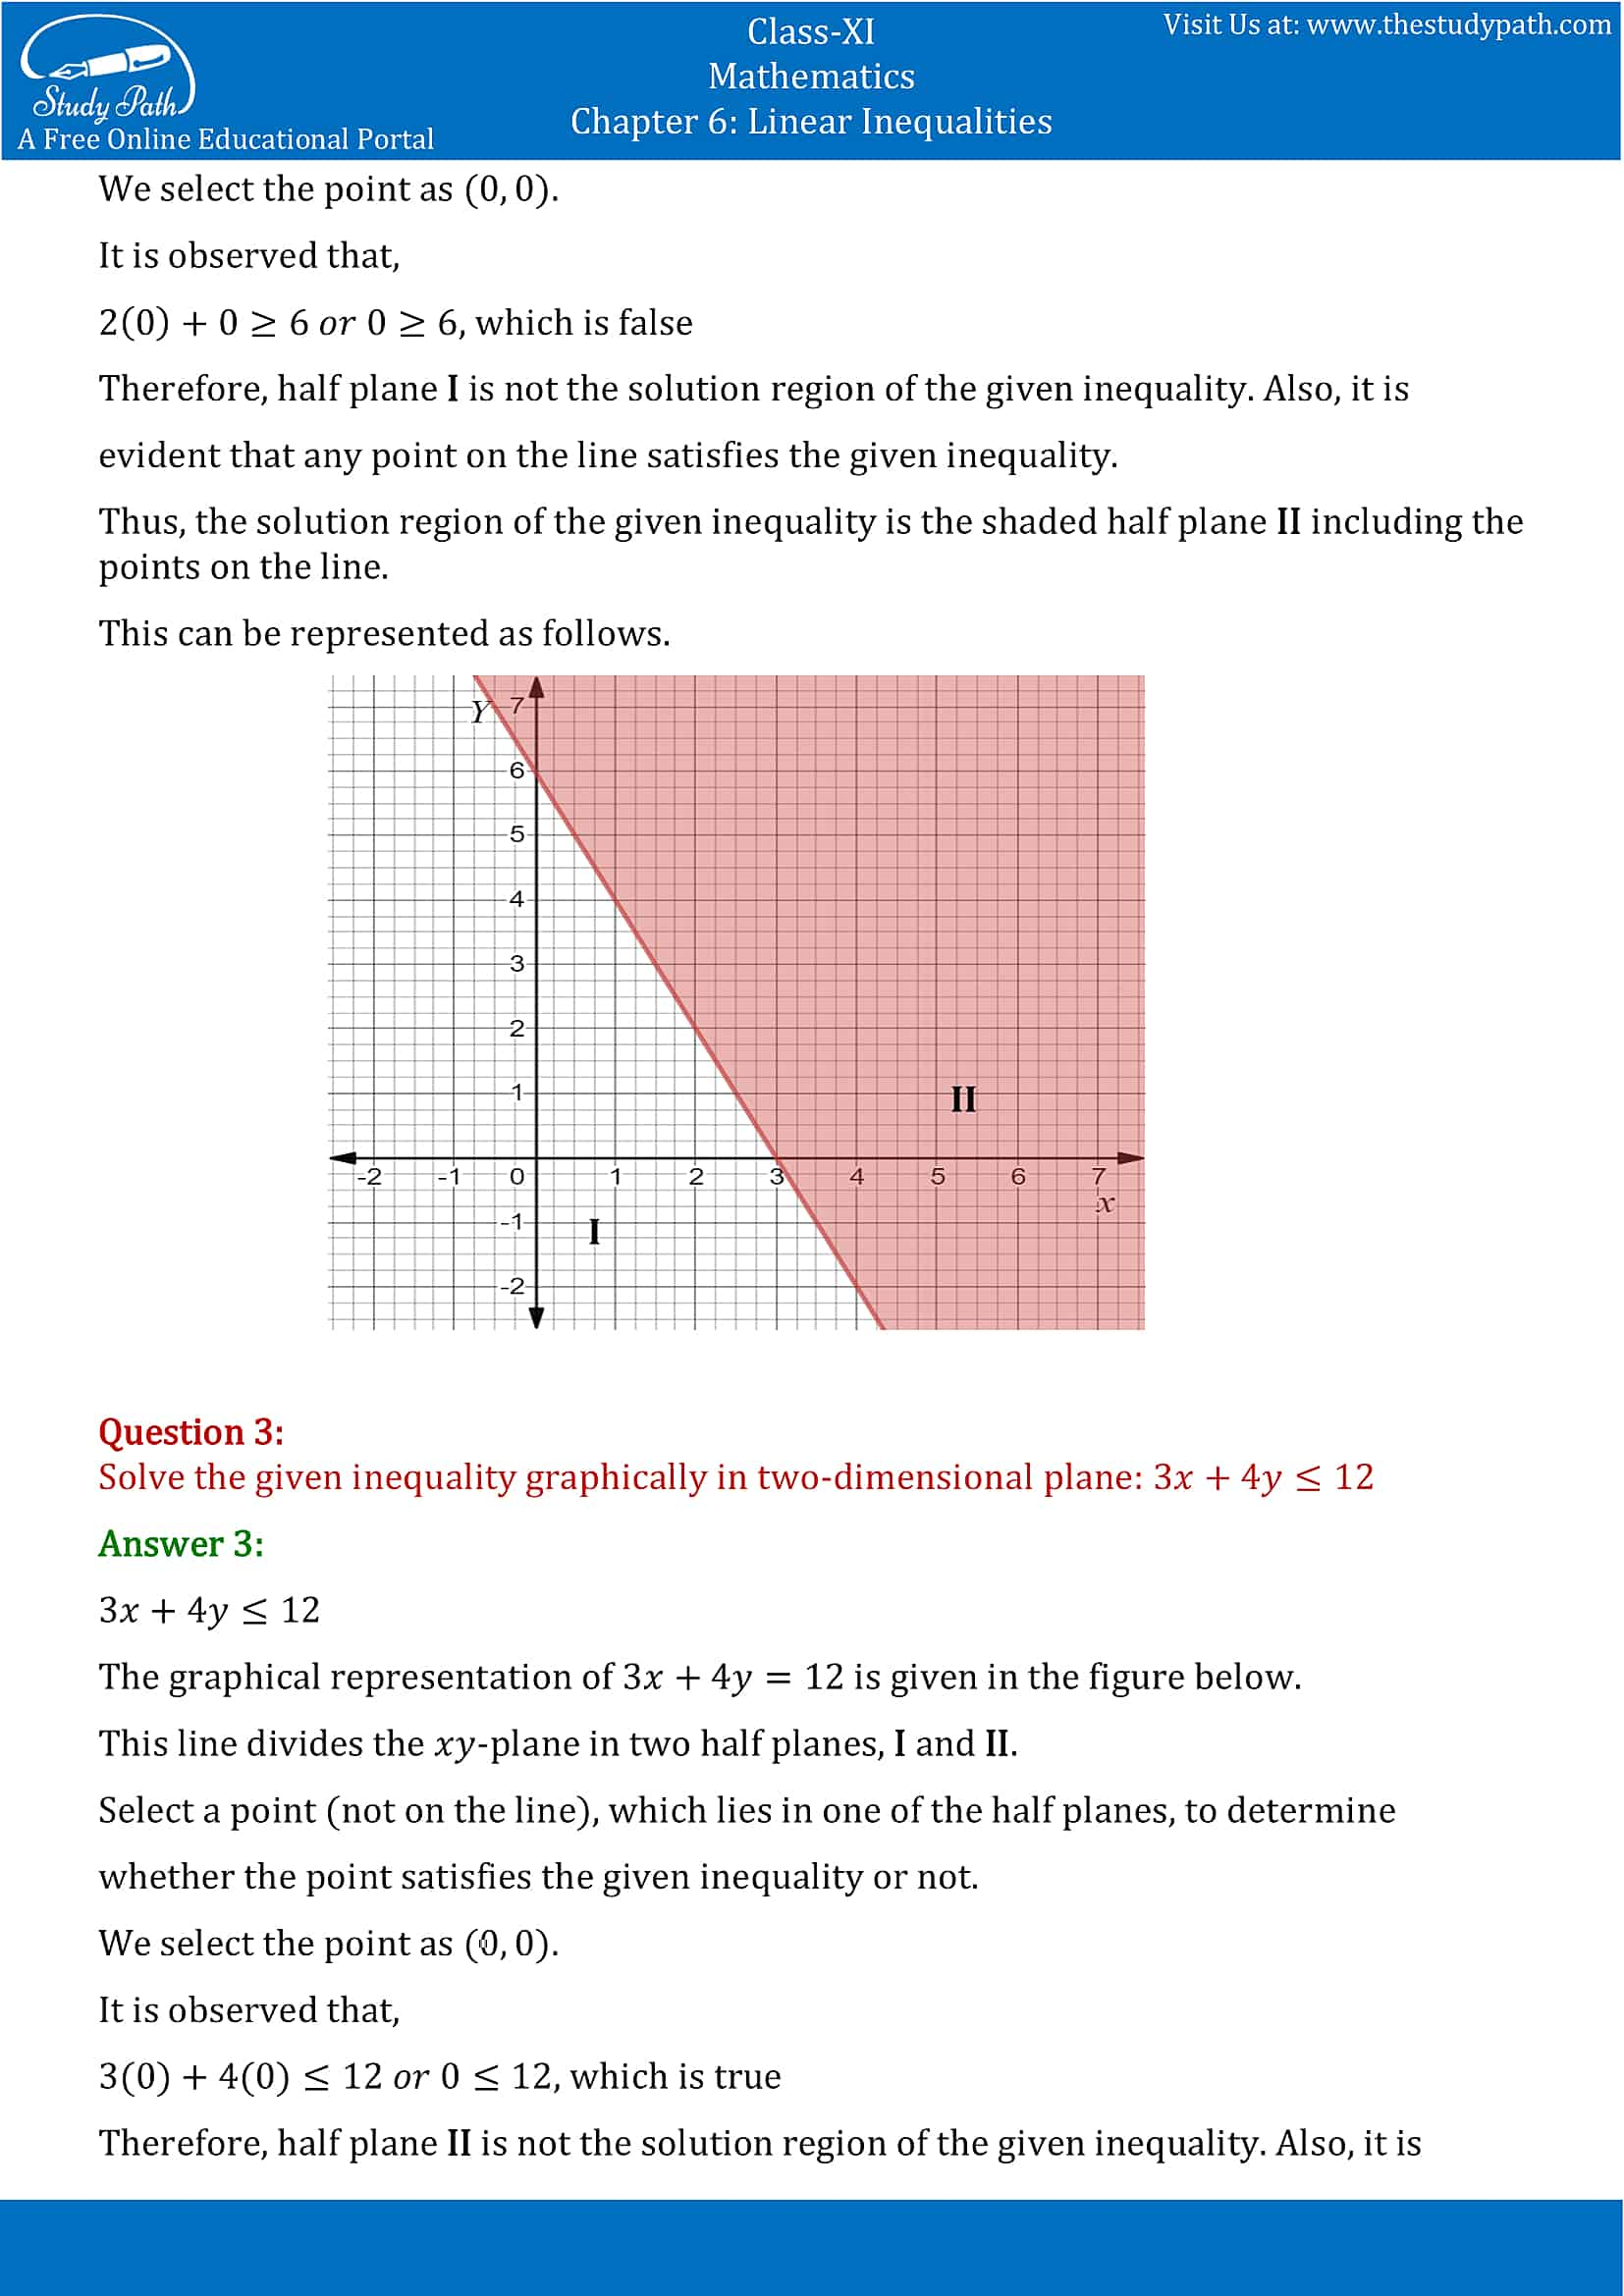 NCERT Solutions for Class 11 Maths chapter 6 Linear Inequalities Exercise 6.2 Part-2